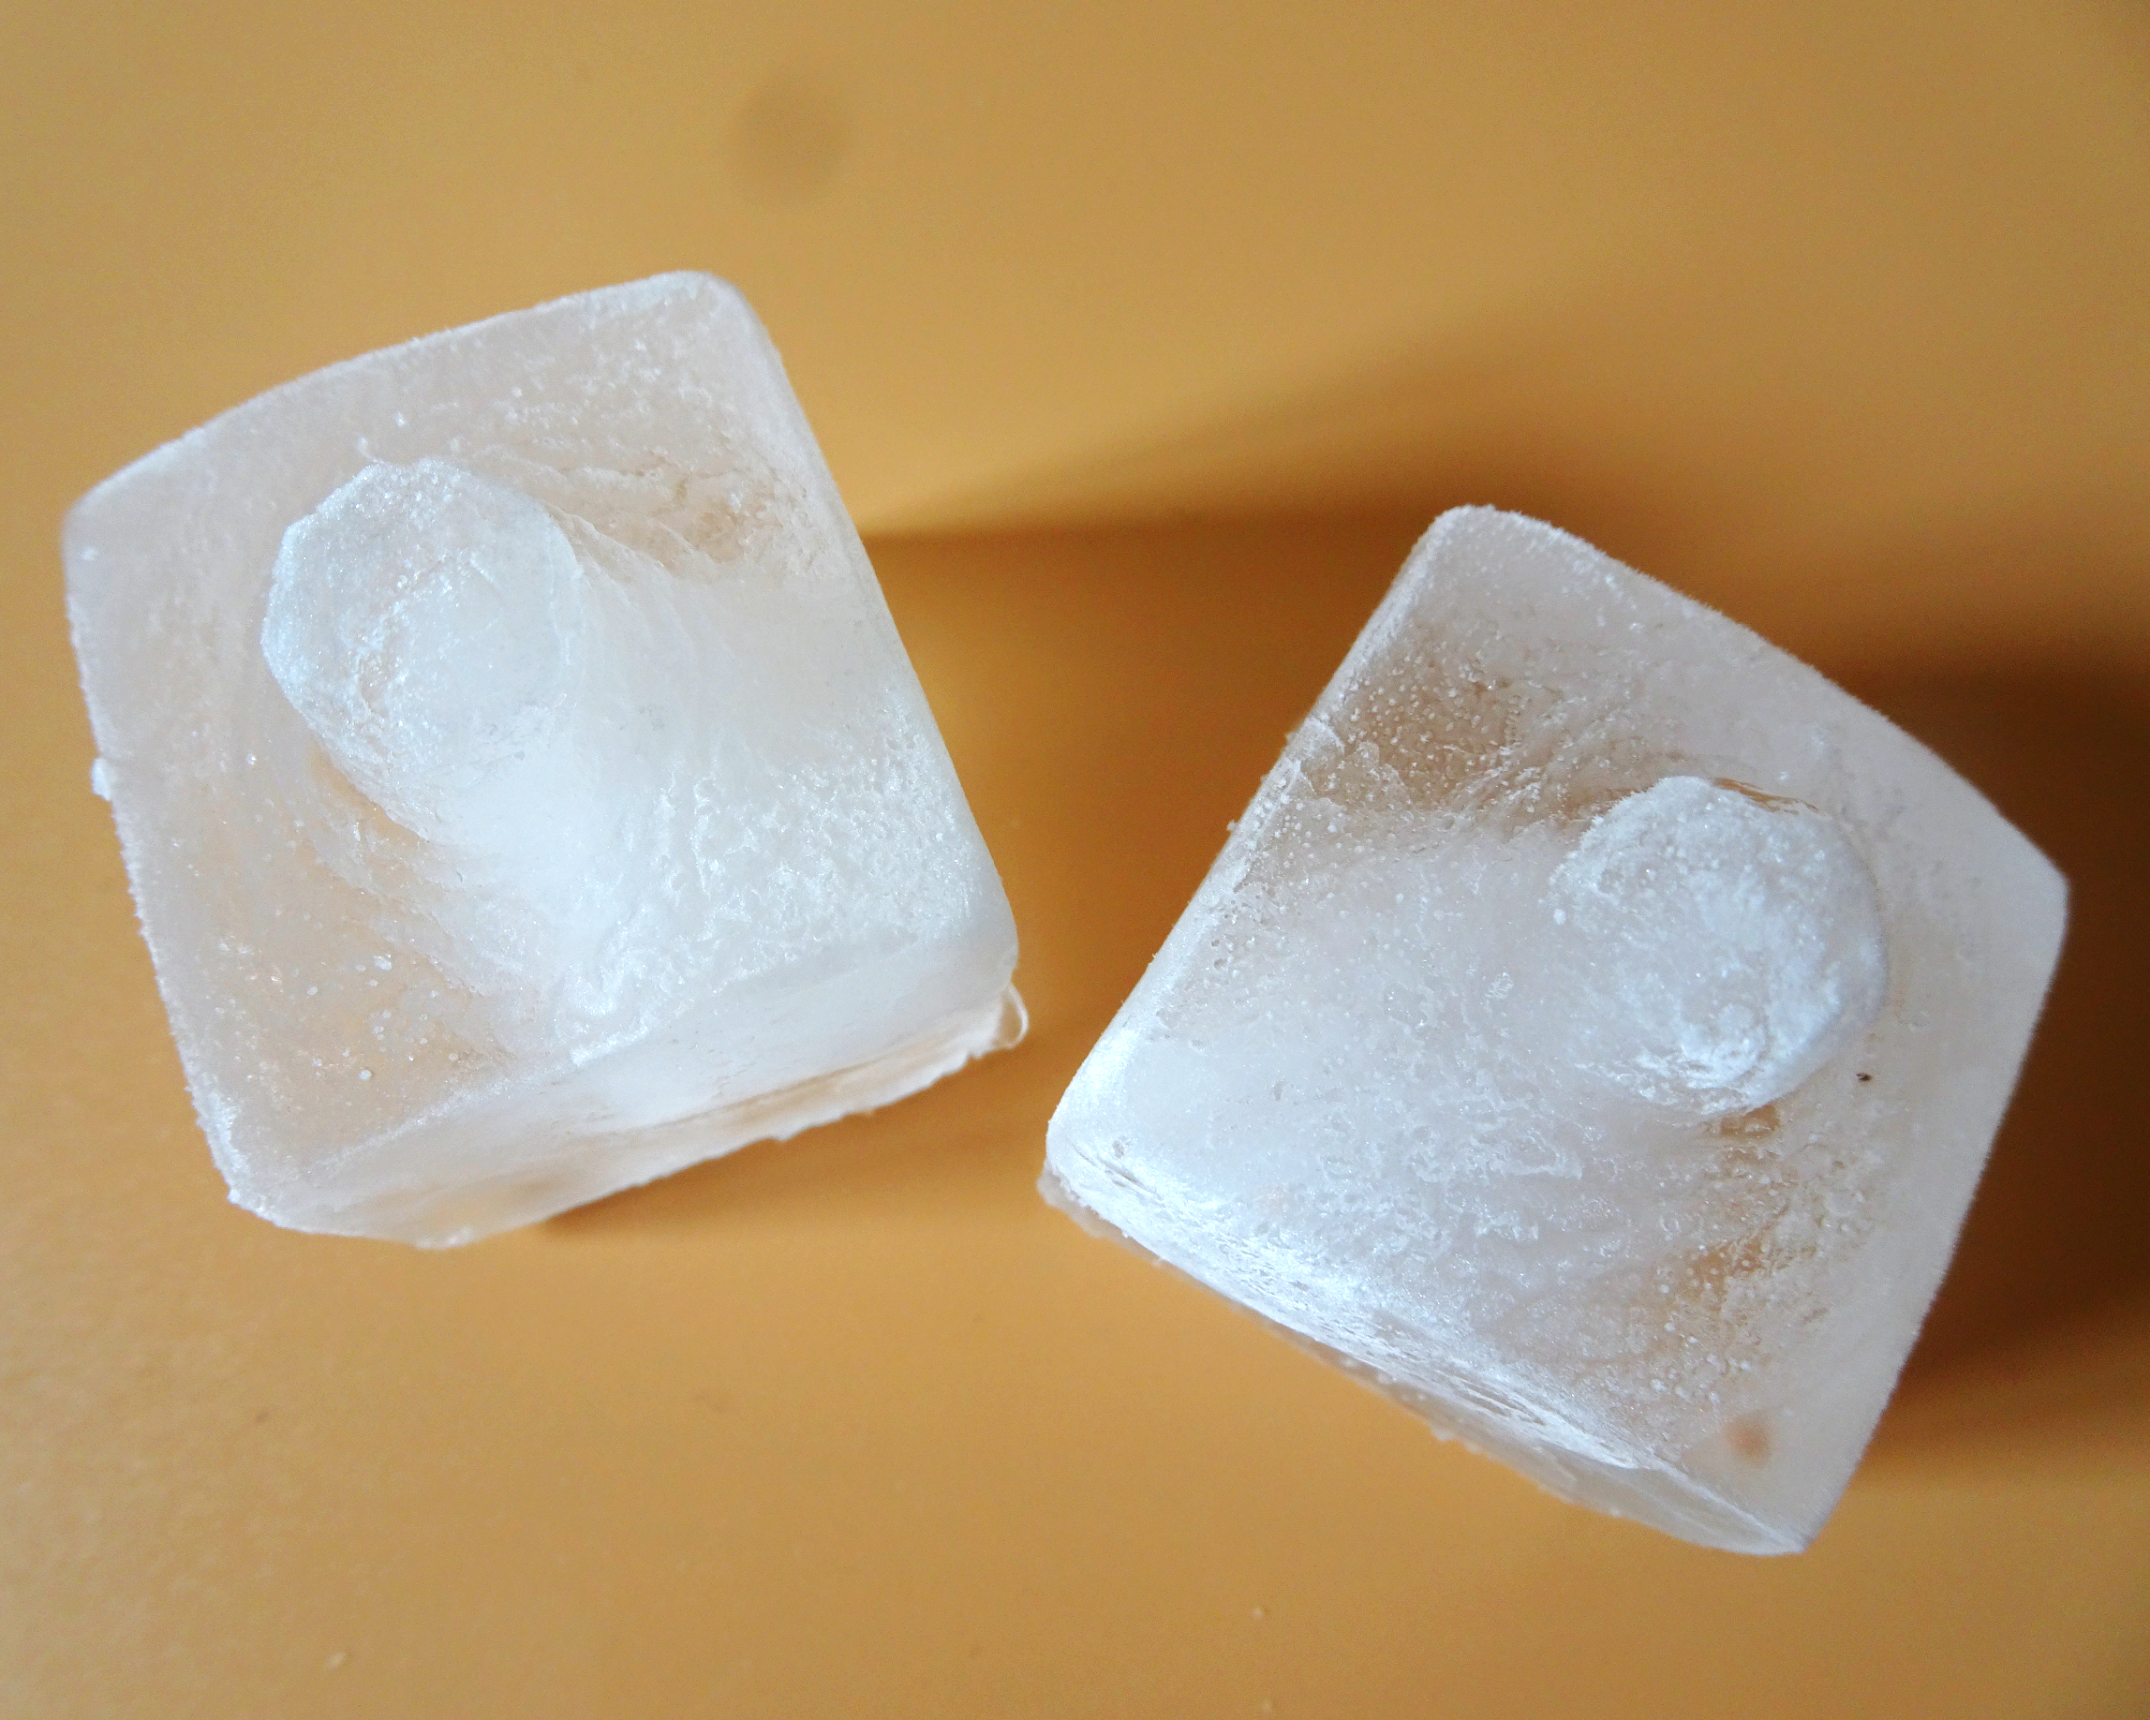 Ice cubes with nippels and boob details